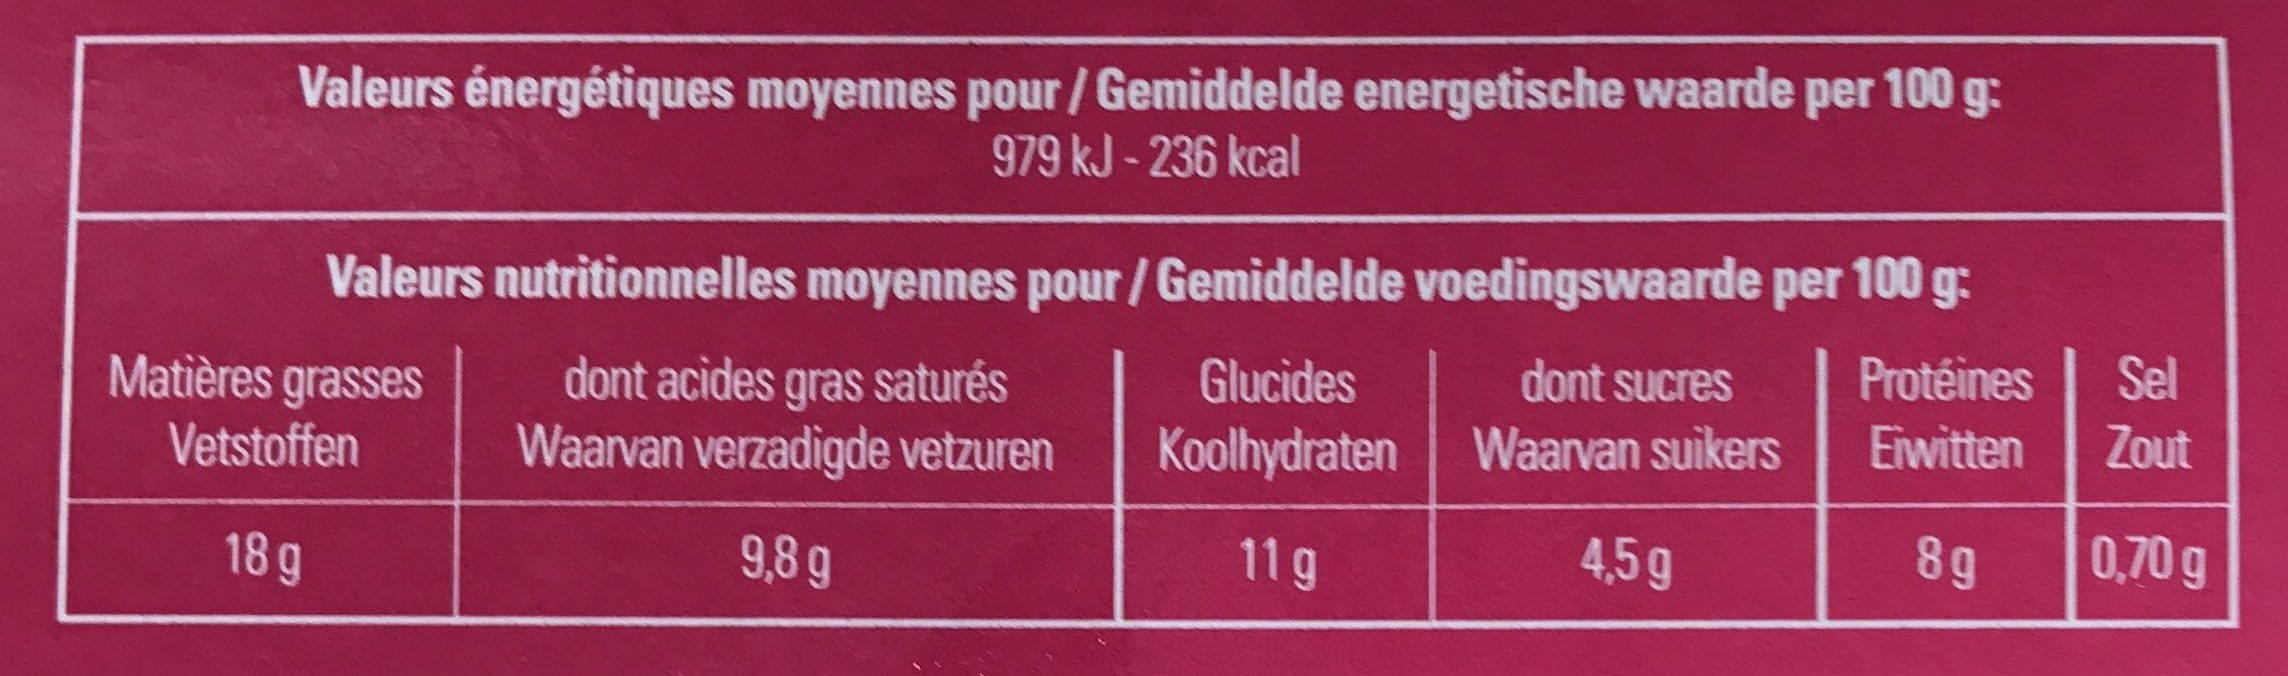 6 Verrines Délicieuses - Nutrition facts - fr